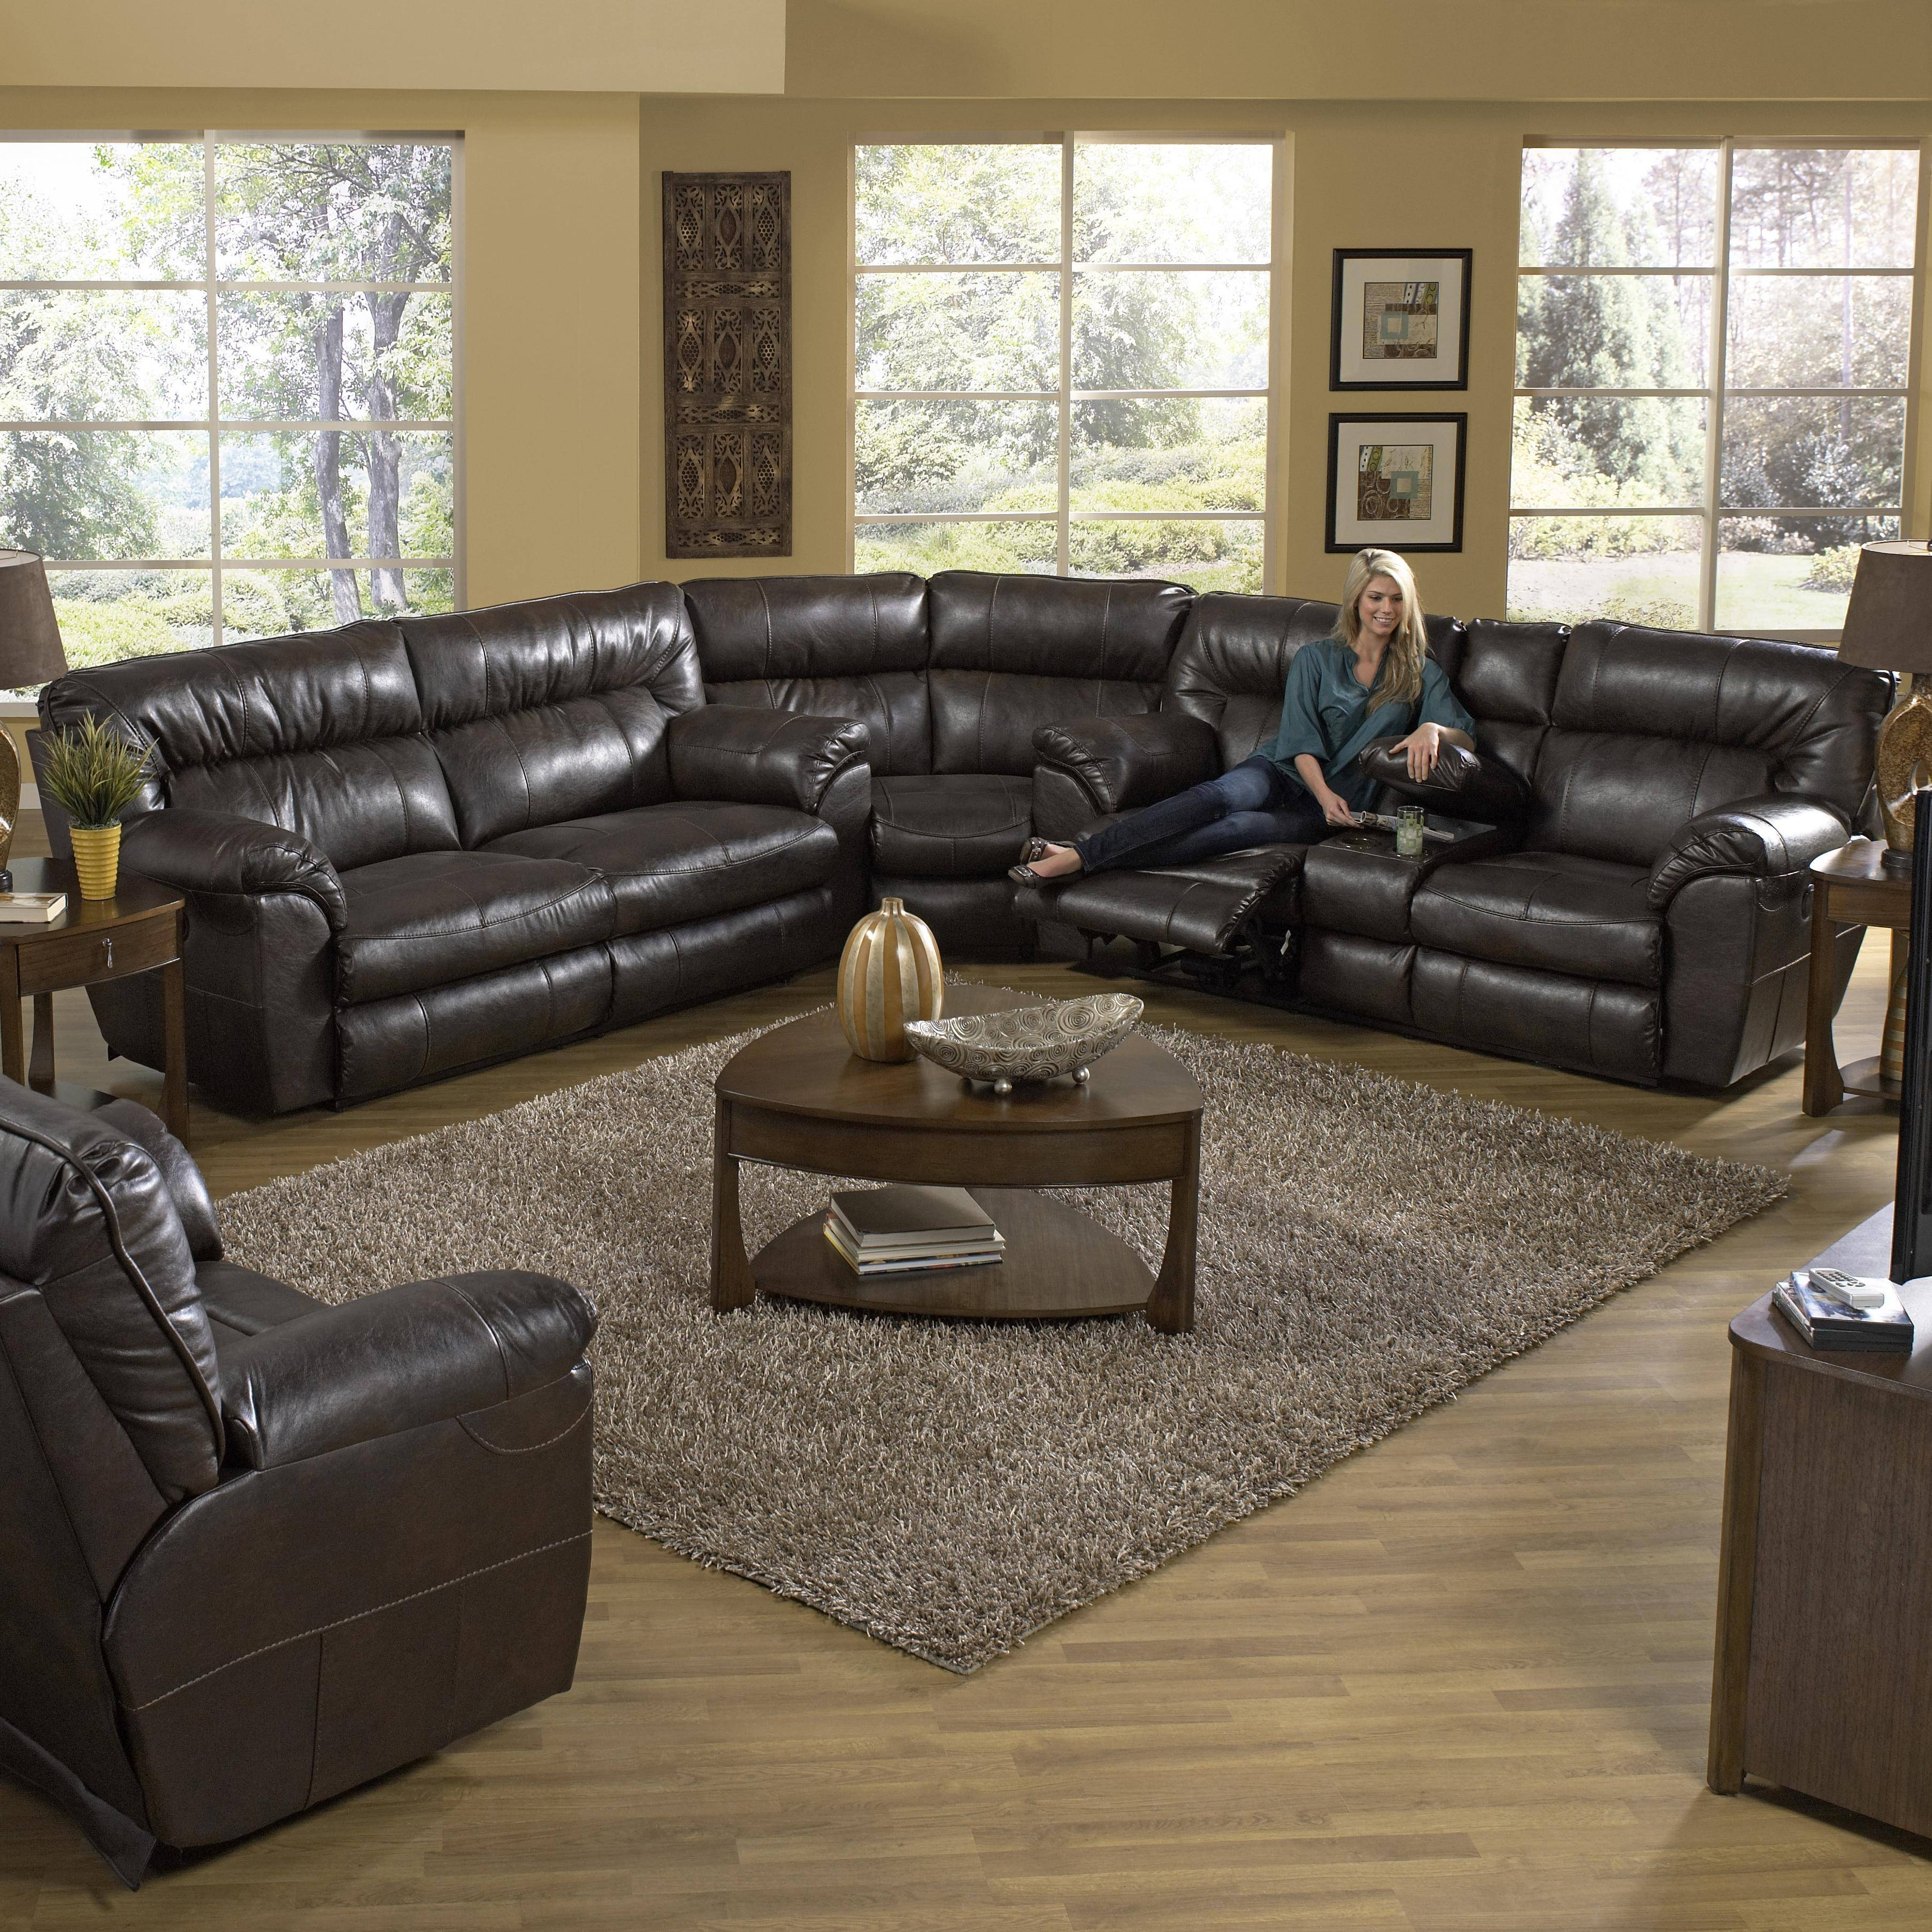 Reclining Sectional Sofa With Right Consolecatnapper | Wolf In Catnapper Recliner Sofas (View 12 of 15)